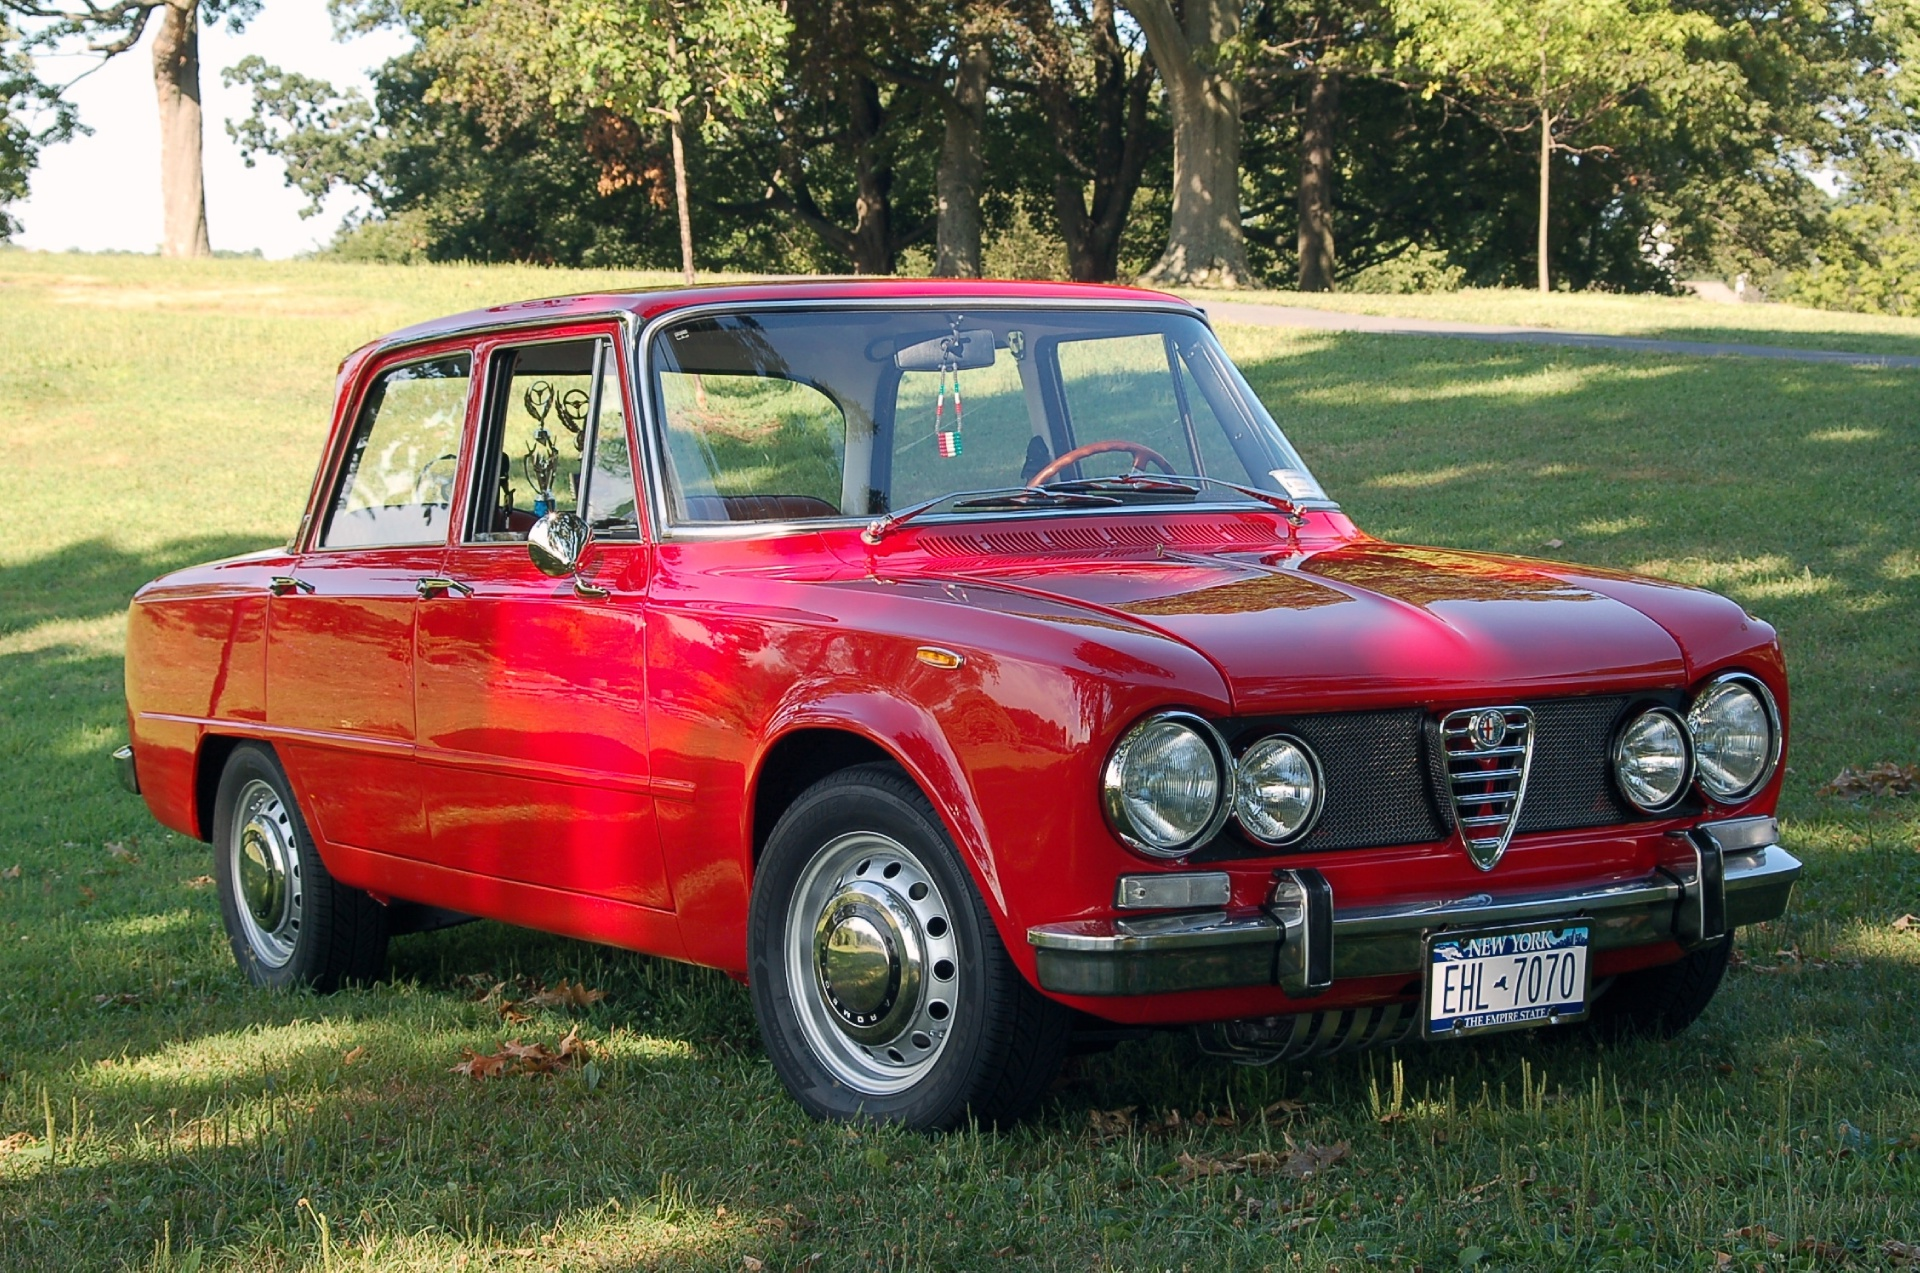 1970 alfa romeo giulia super stock redgiuliasuper for sale near new york ny ny alfa romeo. Black Bedroom Furniture Sets. Home Design Ideas